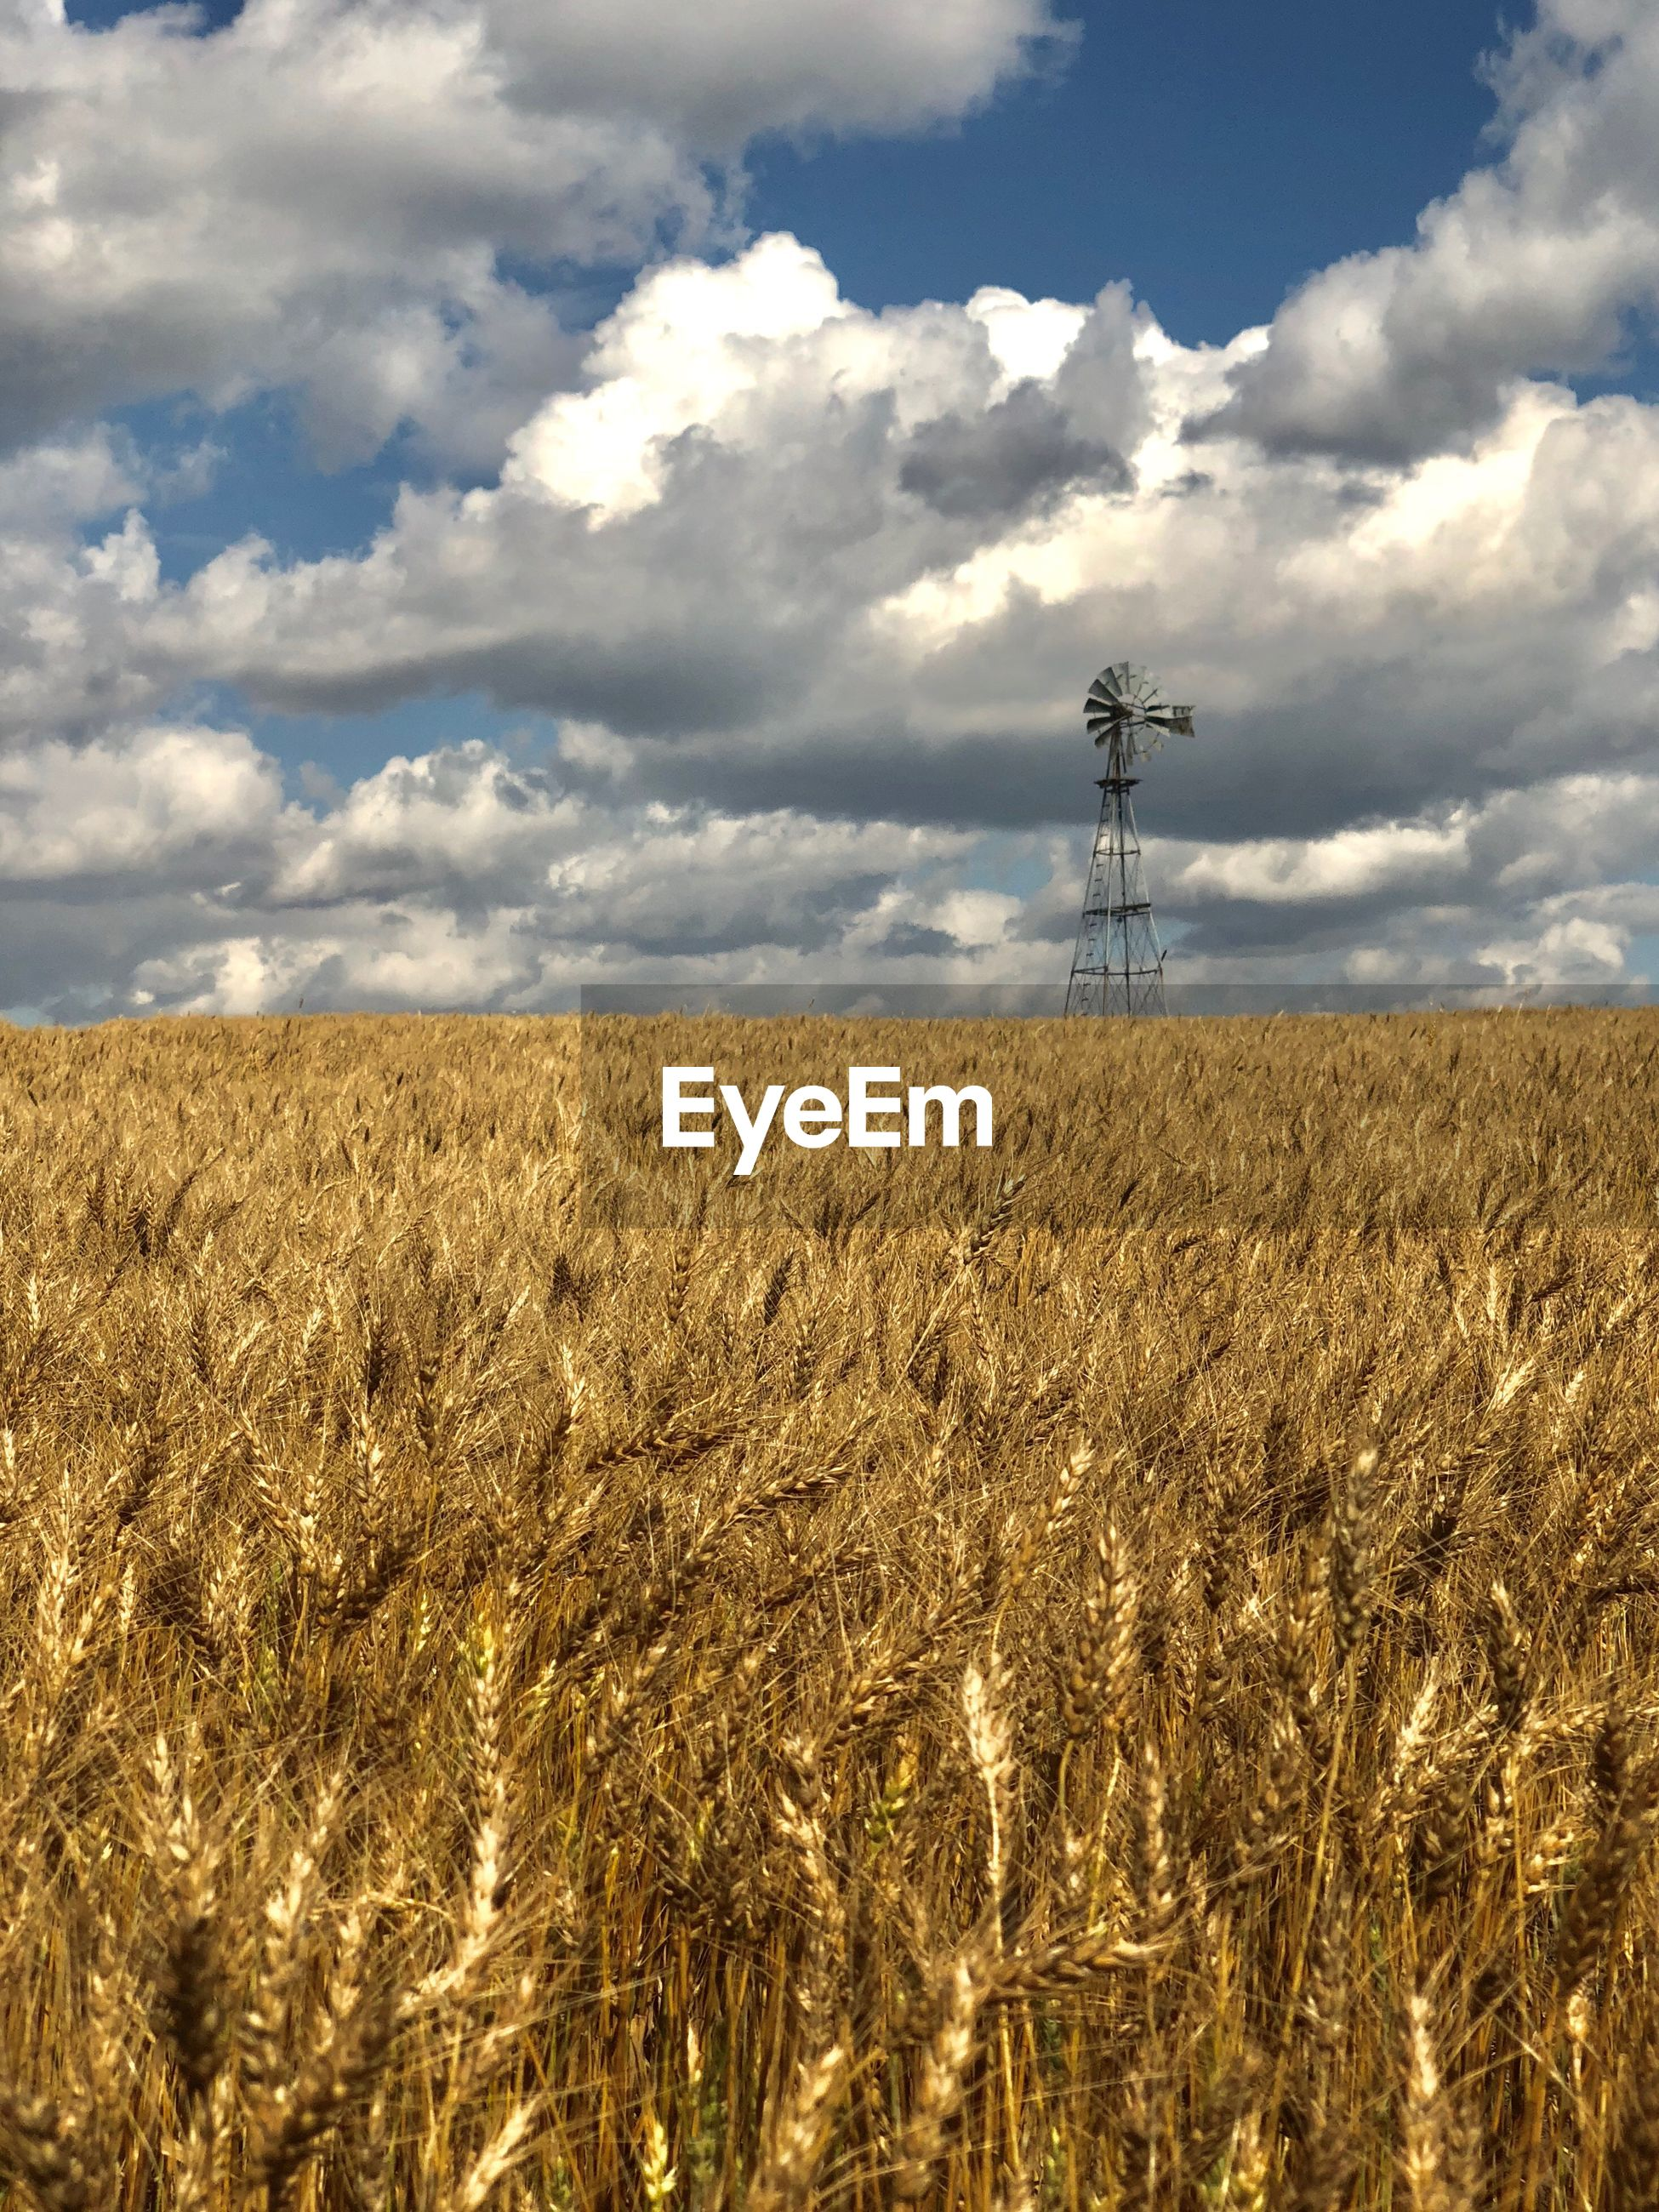 VIEW OF WHEAT FIELD AGAINST CLOUDY SKY